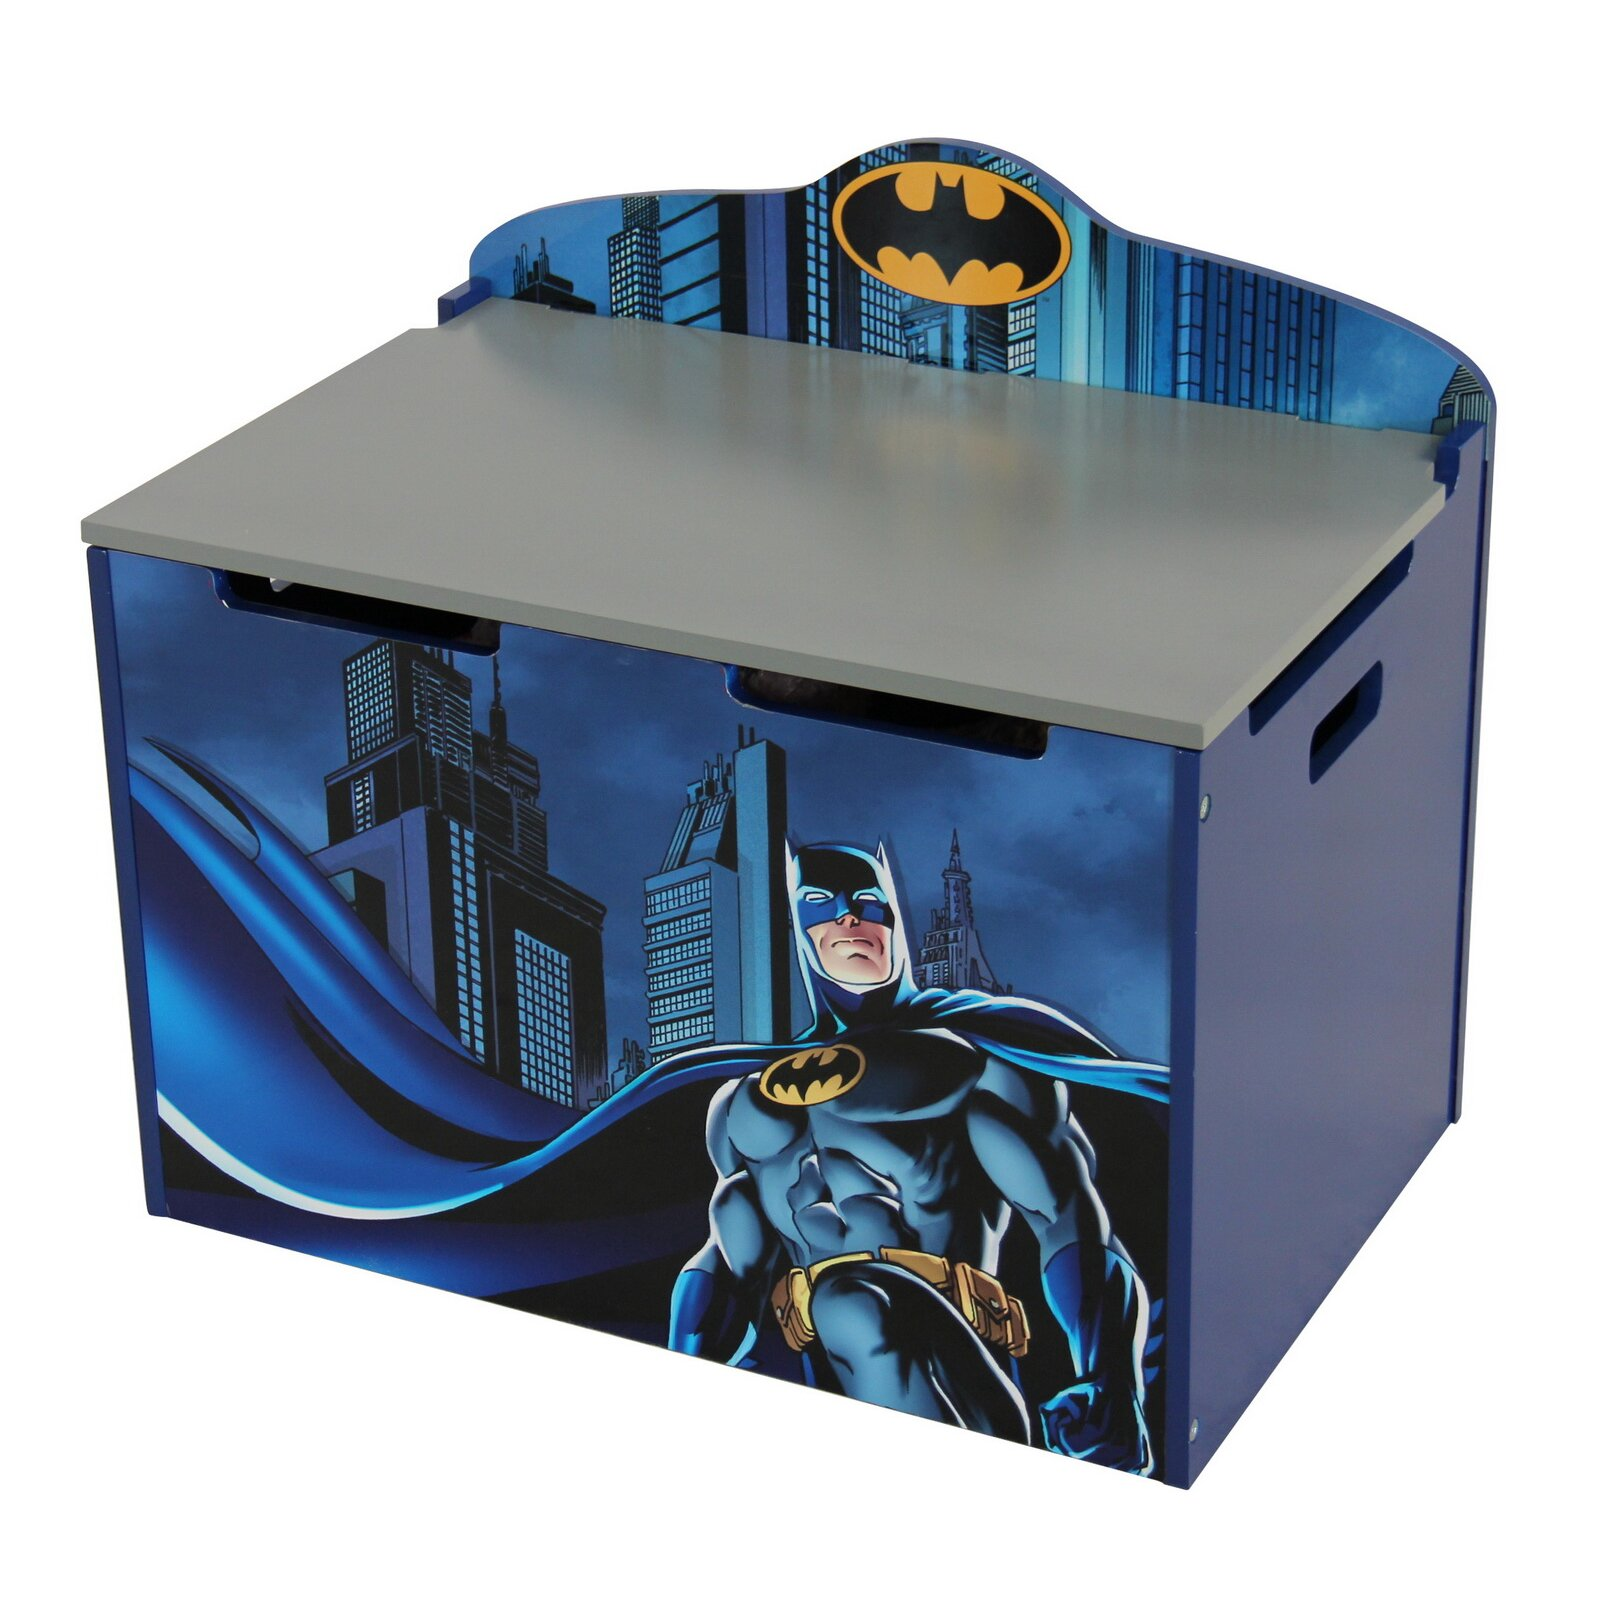 Warner Brothers Batman Toybox Amp Reviews Wayfair